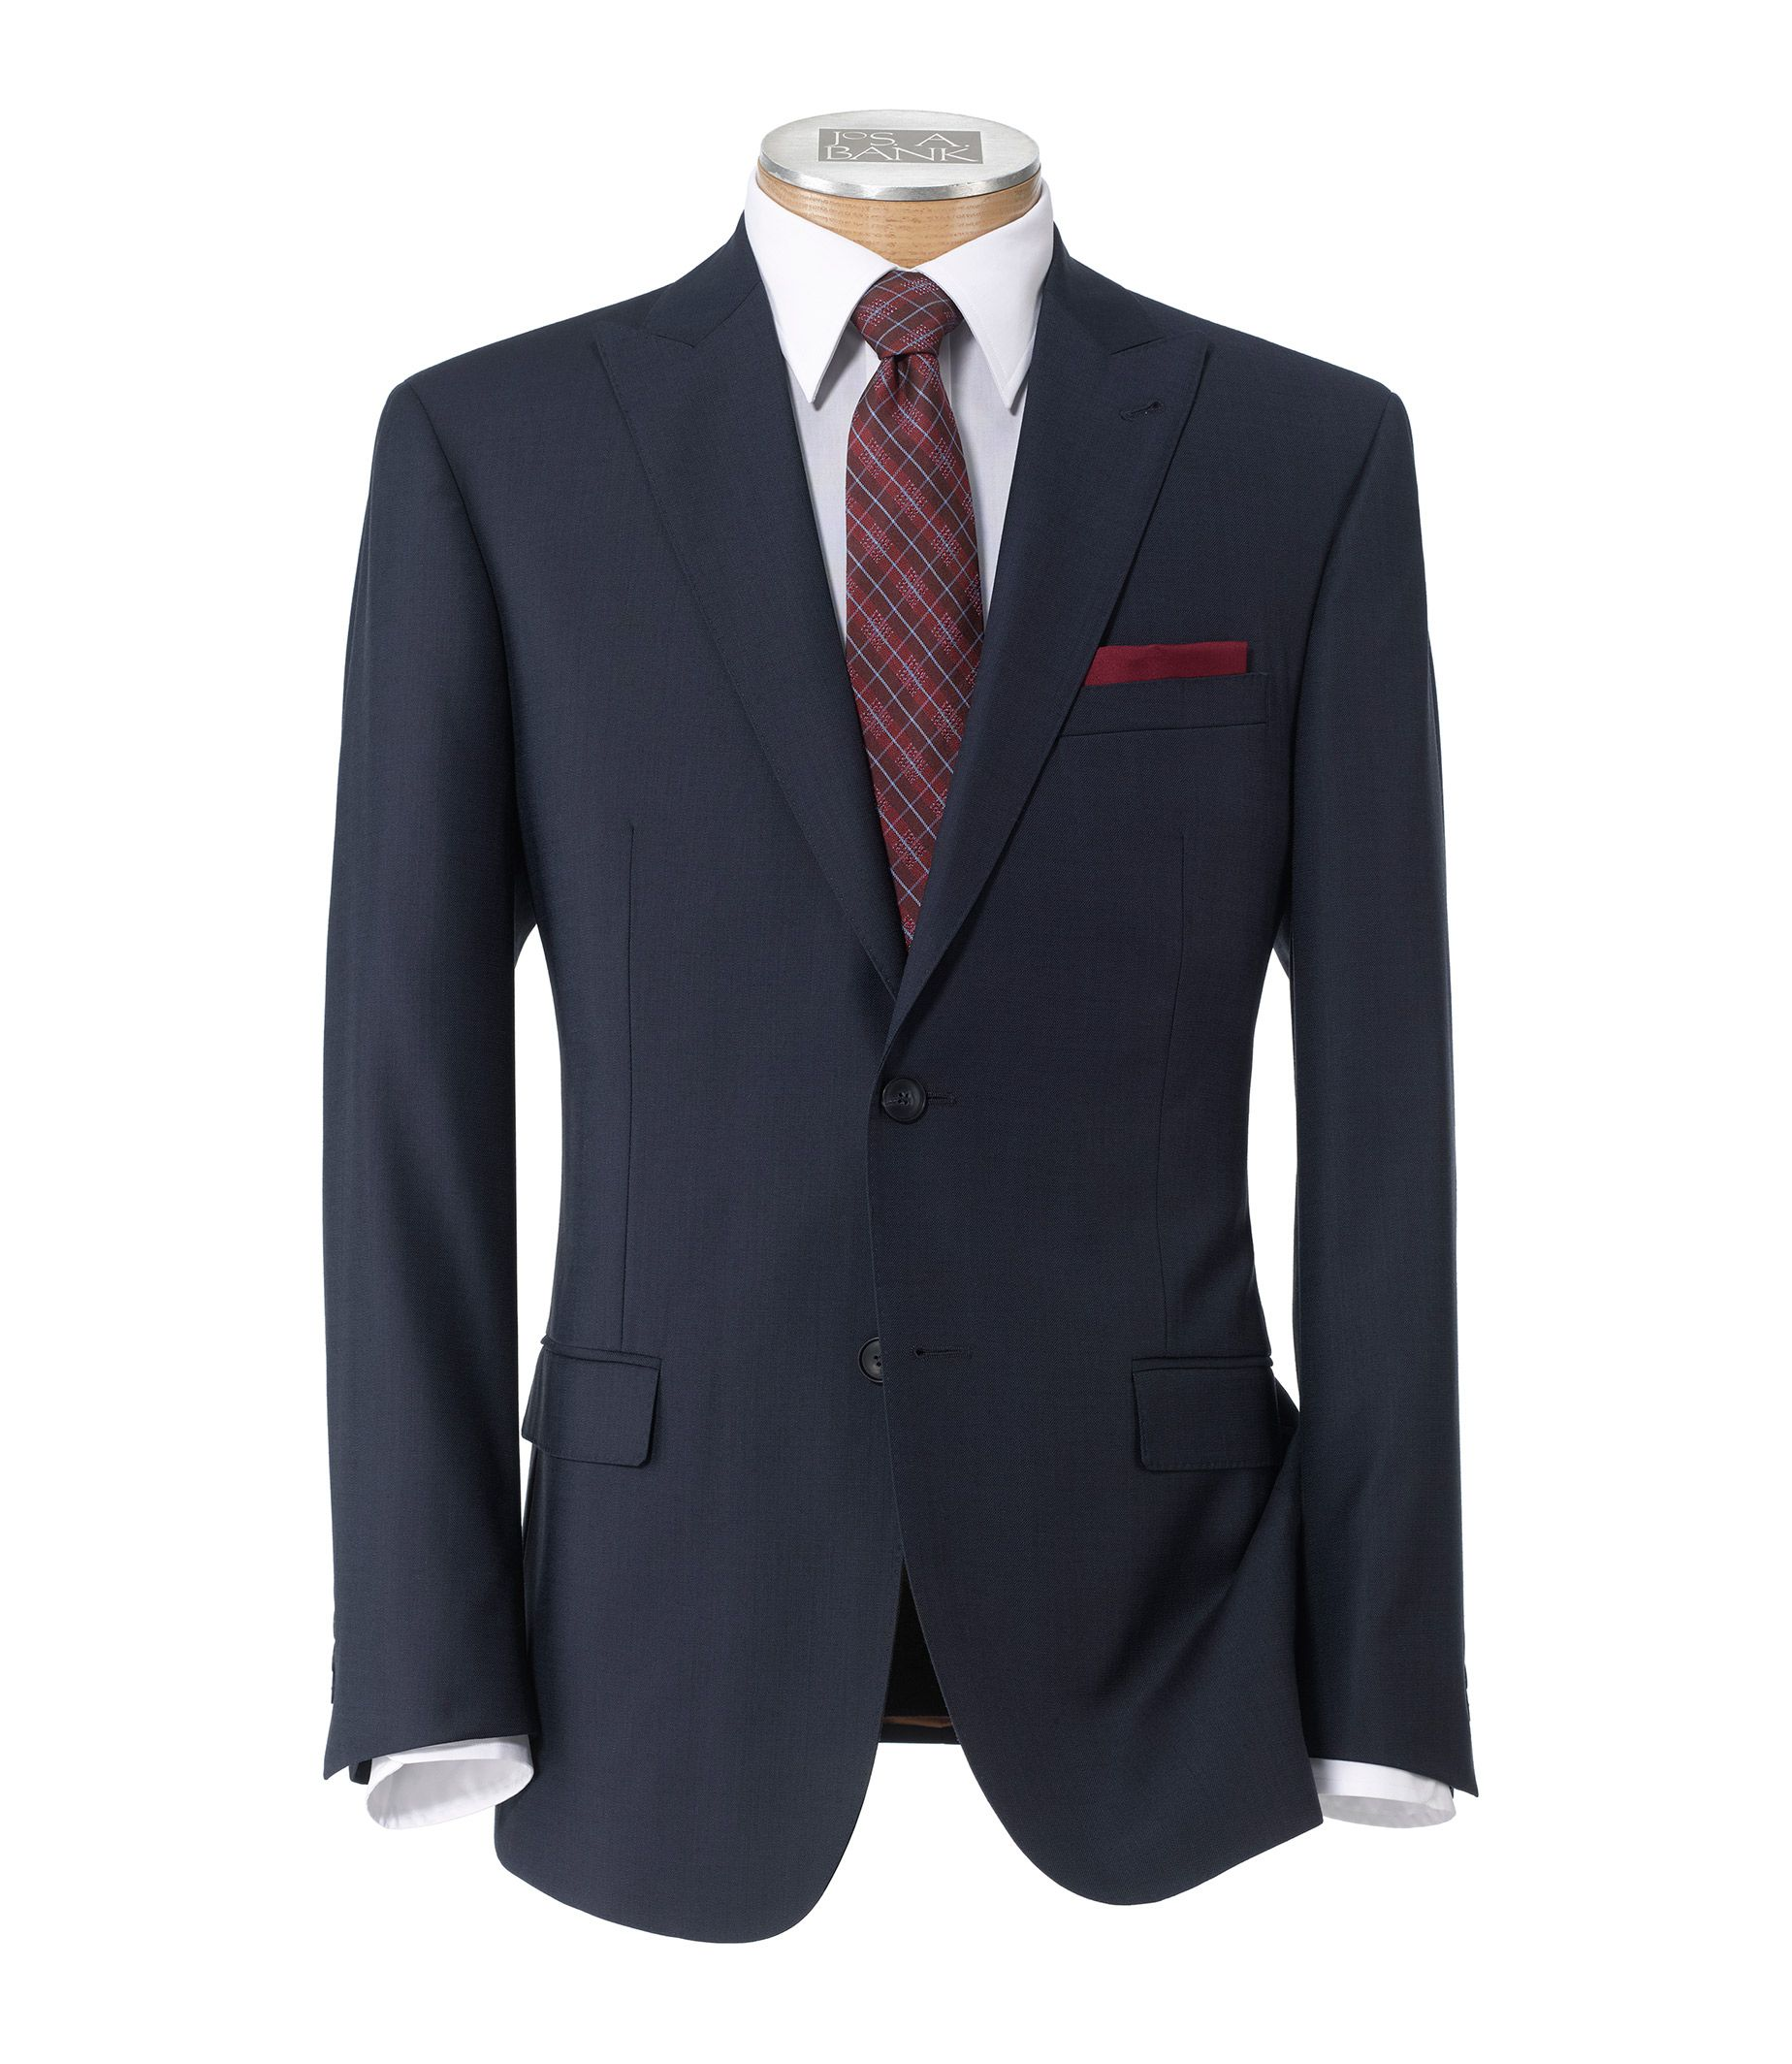 Men's Suits Clearance | Discounts   Sales | JoS. A. Bank Clothiers